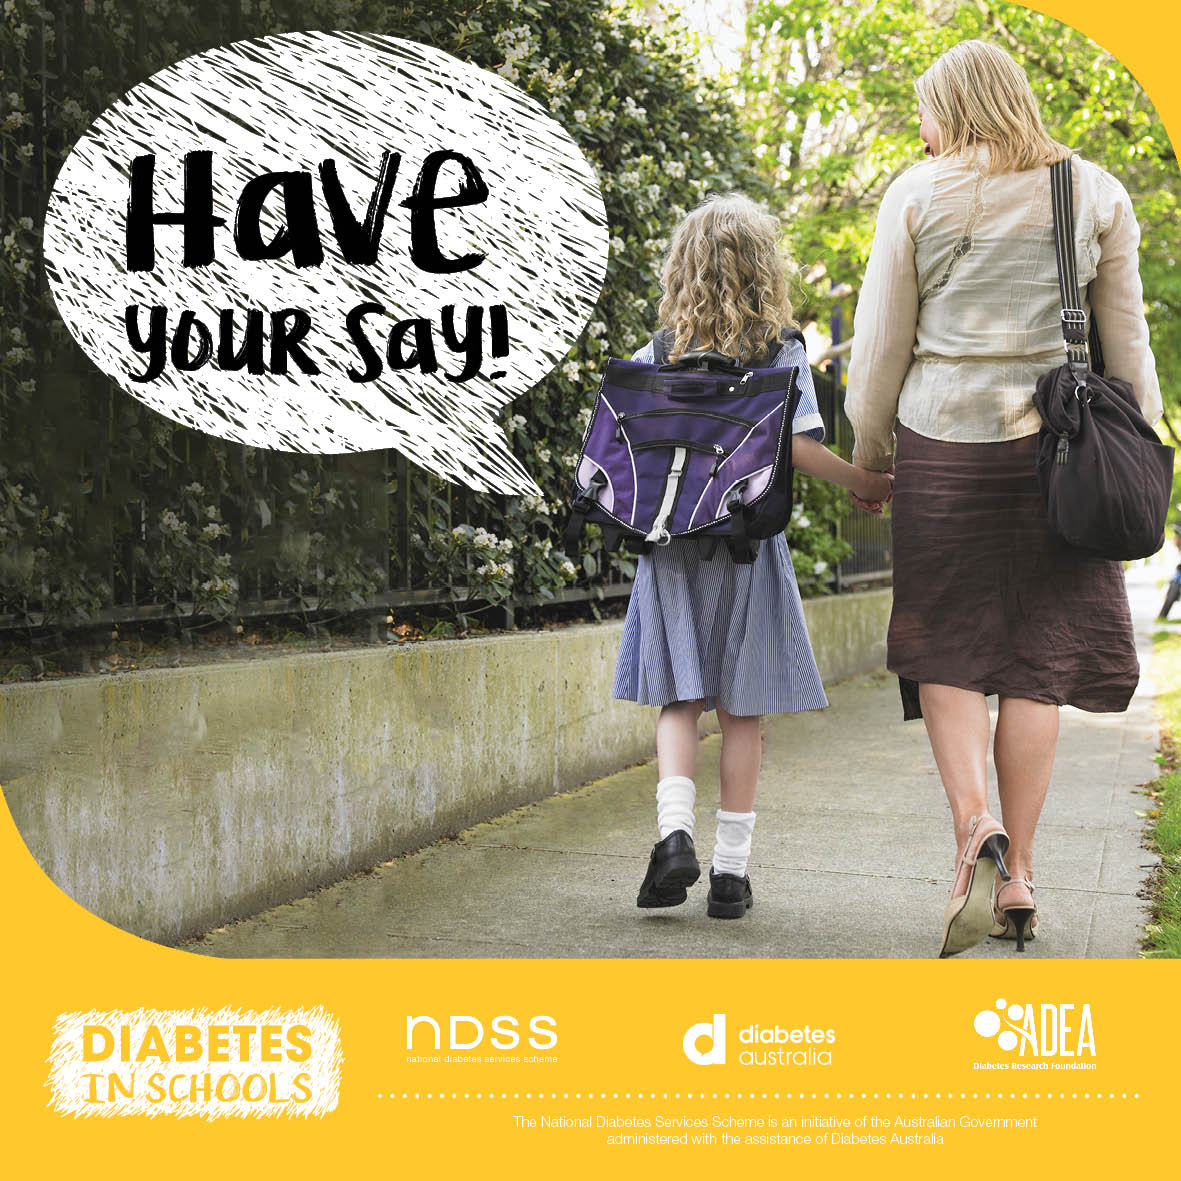 test Twitter Media - Live in #SouthAustralia & want to have your say about #diabetes management in schools? Next week we're running a series of workshops for parents & school staff. Register here: https://t.co/qGX7NAYGZ7. Can't make a workshop? Take a 15 min survey on same link above #Adelaide #type1 https://t.co/JeRmS4O7fL